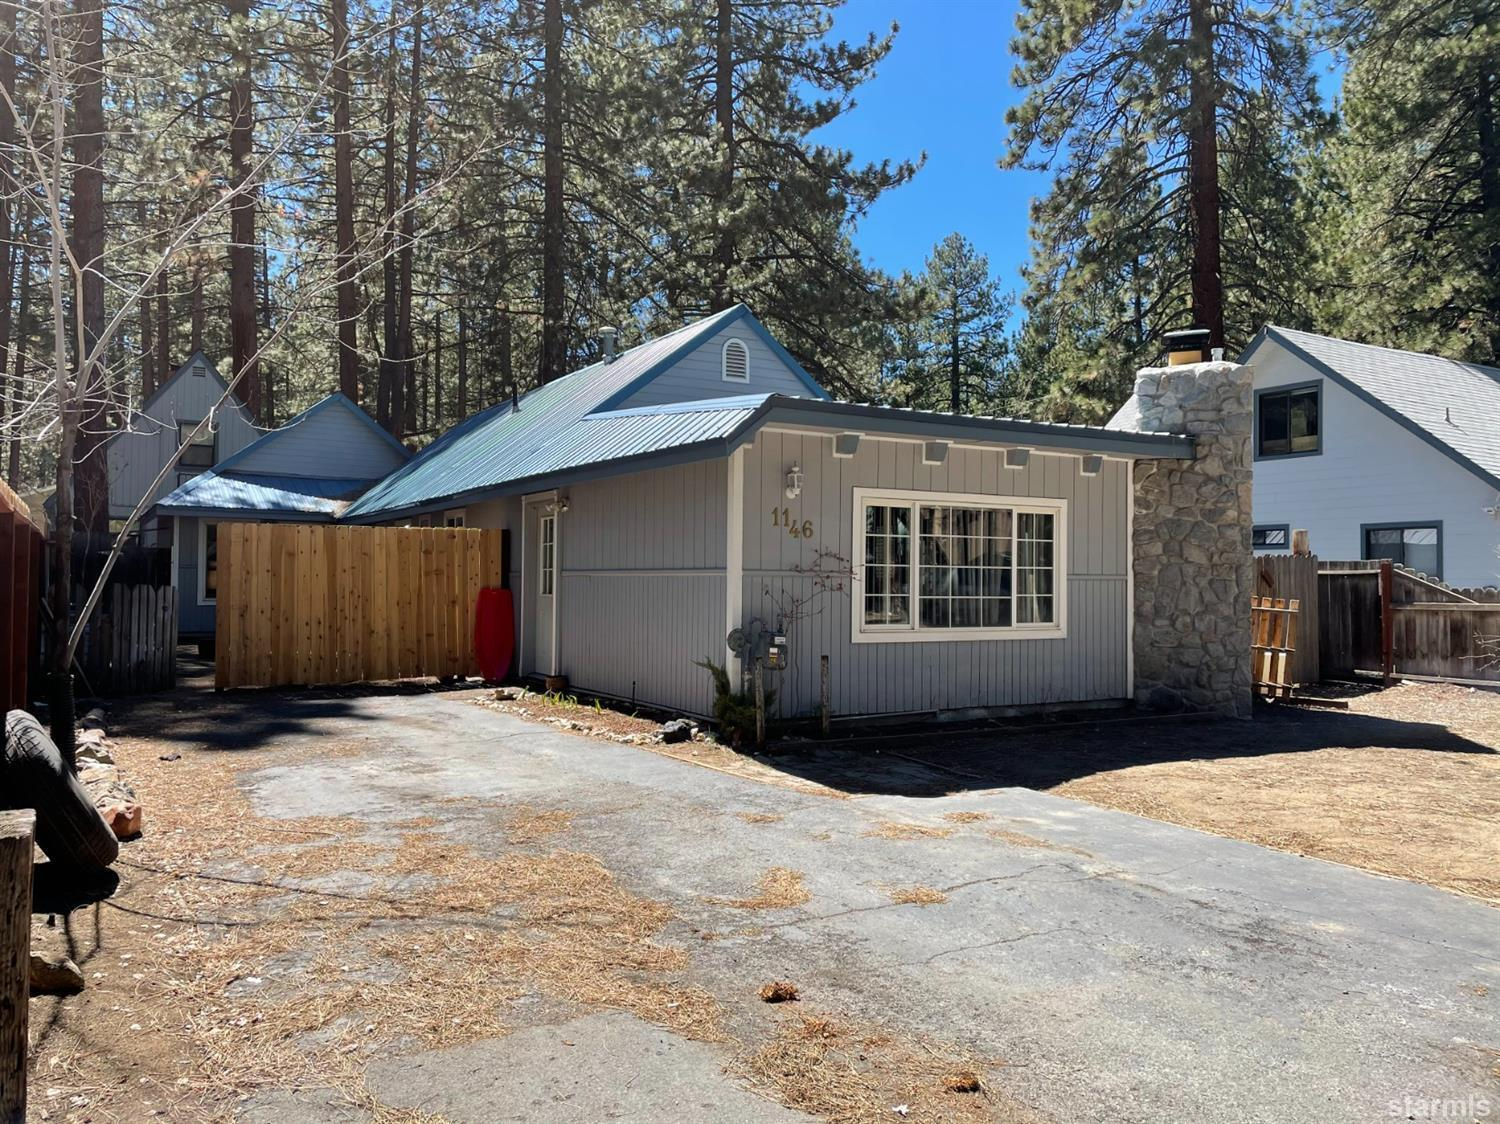 1146 Carson Avenue, 134193, South Lake Tahoe, Single-Family Home,  for sale, Realty World - Lake Tahoe